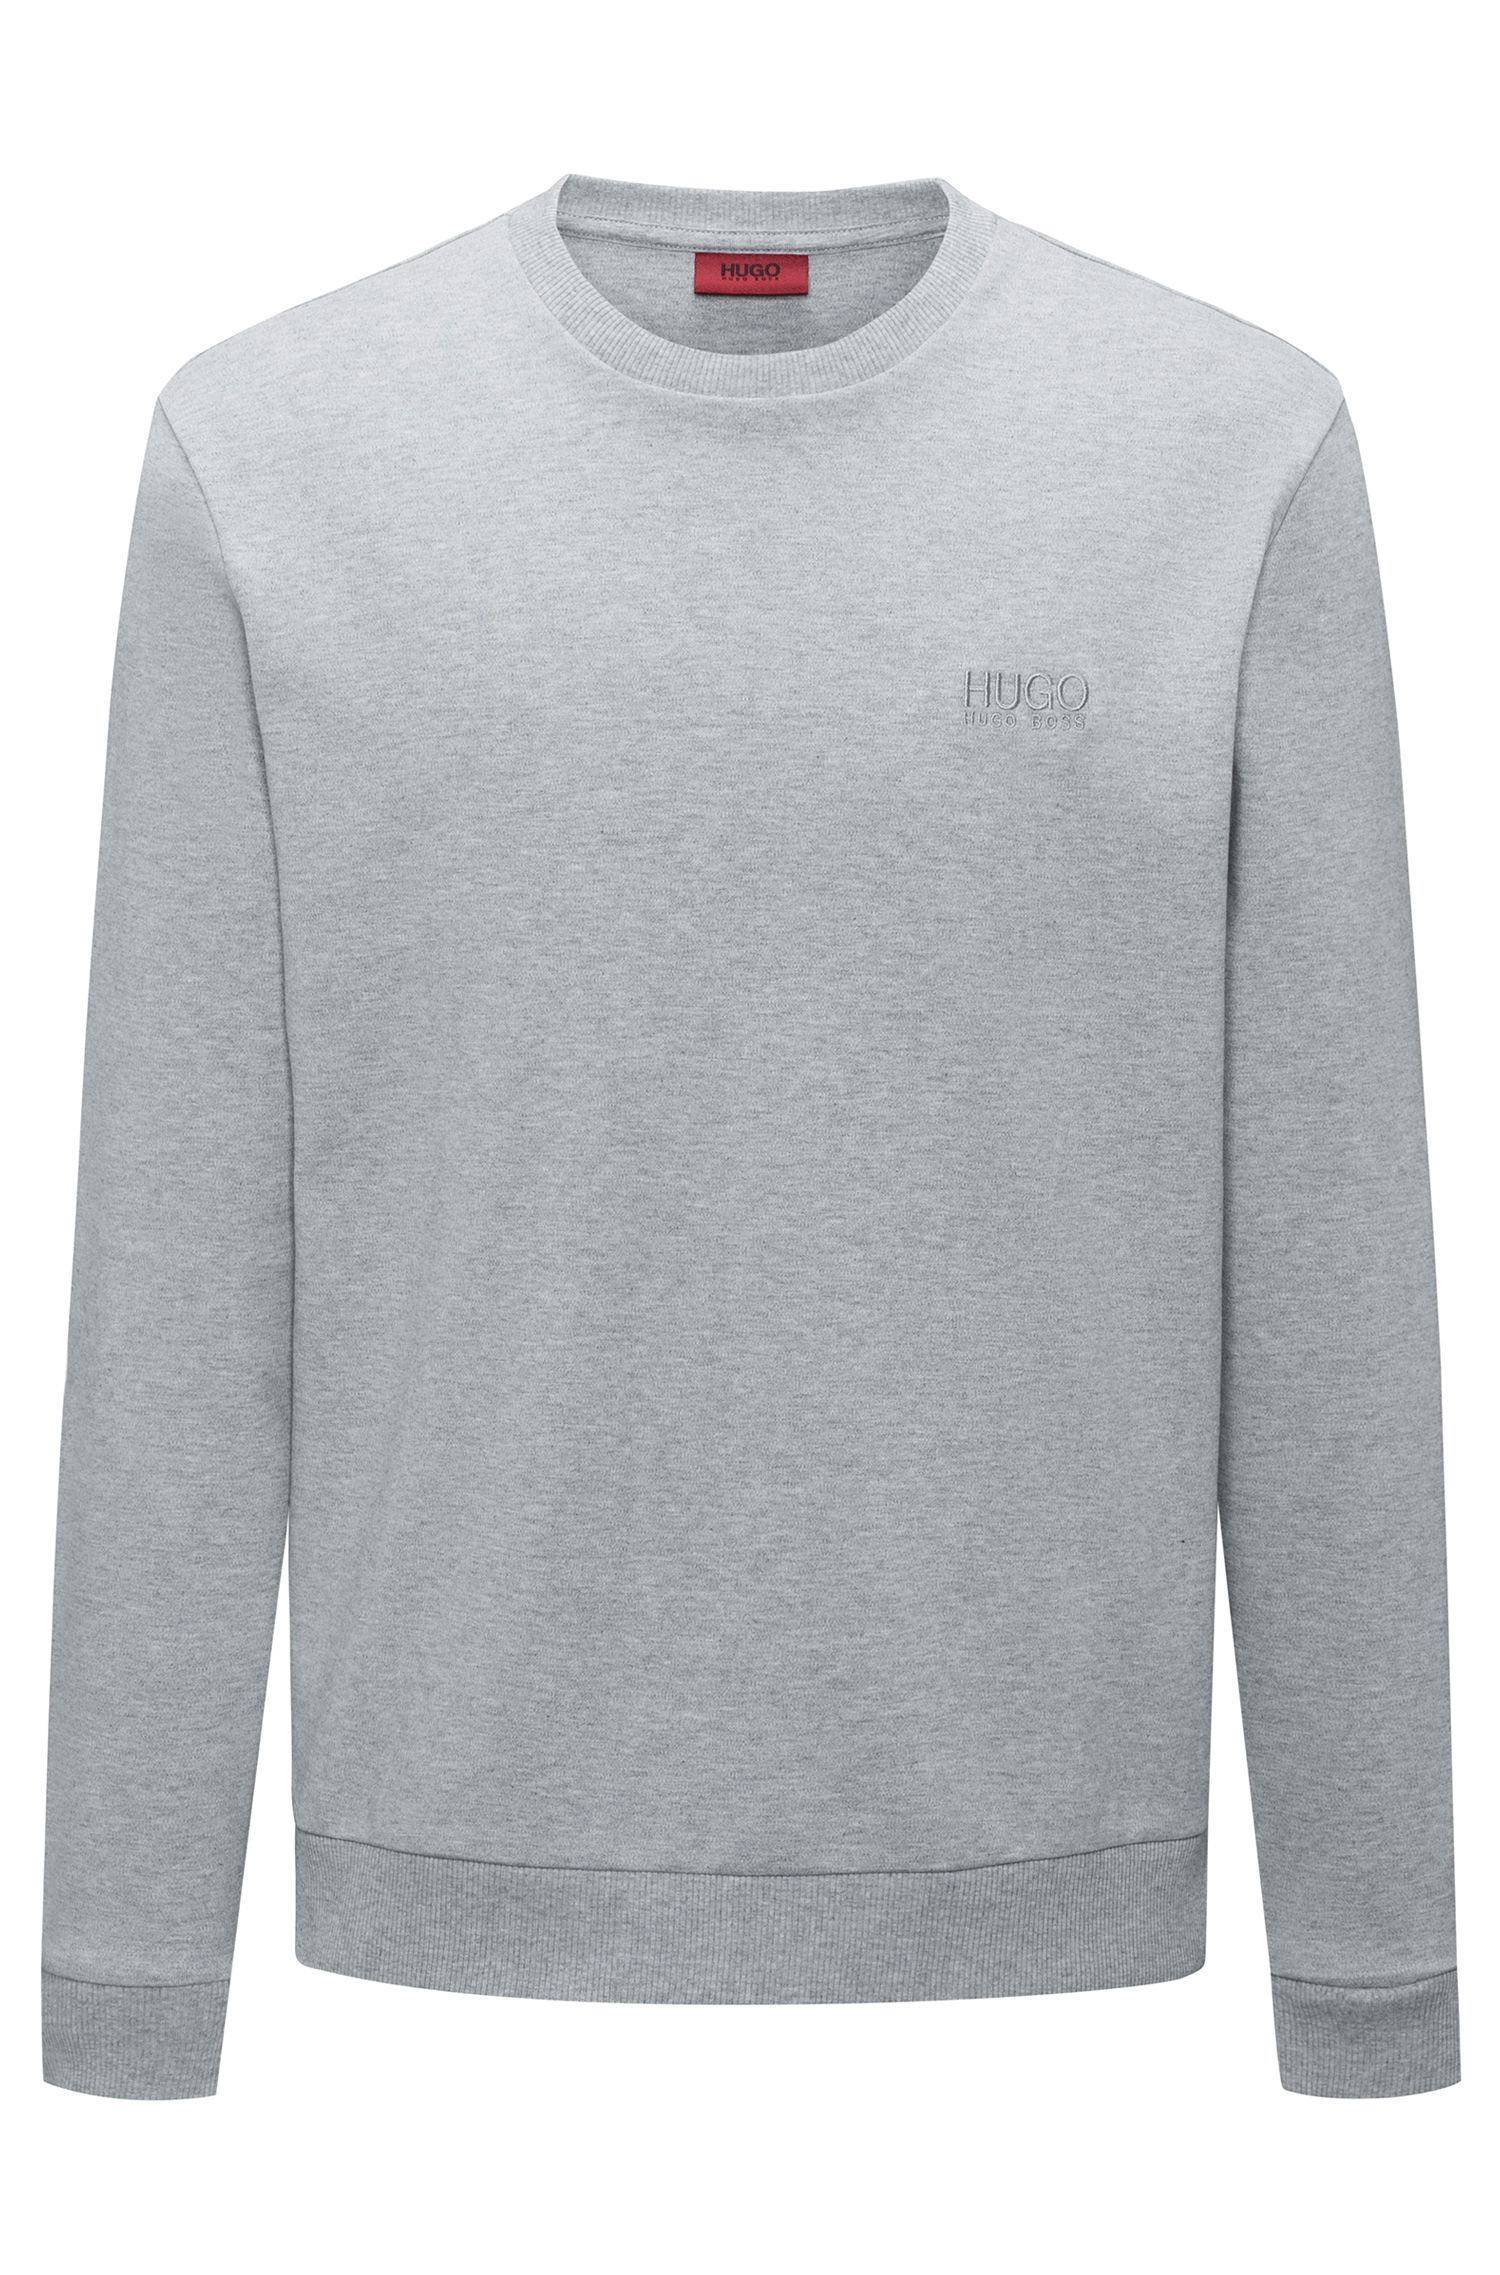 Logo sweater in interlock cotton